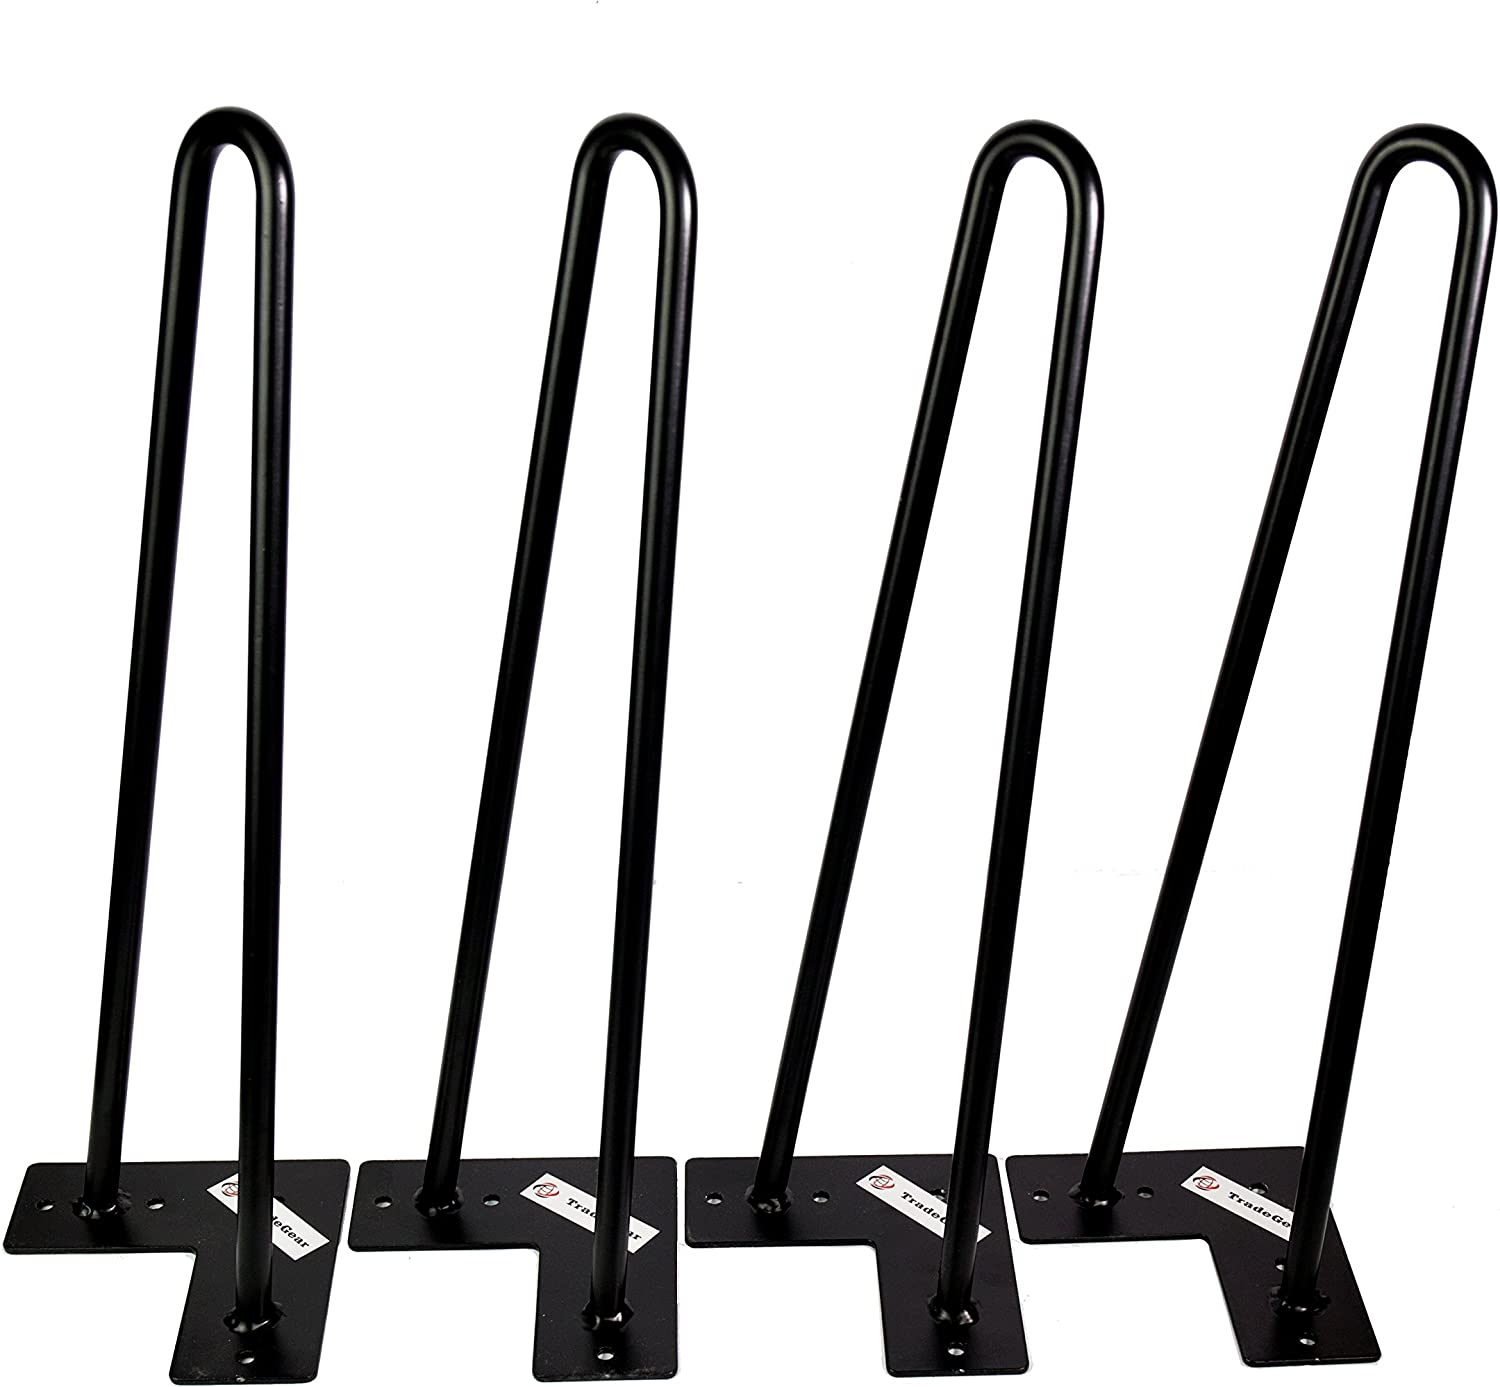 TradeGear Double Rod Hairpin Table Legs, 16 Inch Mid-Century Style Coffee Table Legs, Heavy Duty 1/2 Inch Double Weld Steel with Black Powder Finish, Includes Floor Protector Feet and Screws, Set of 4